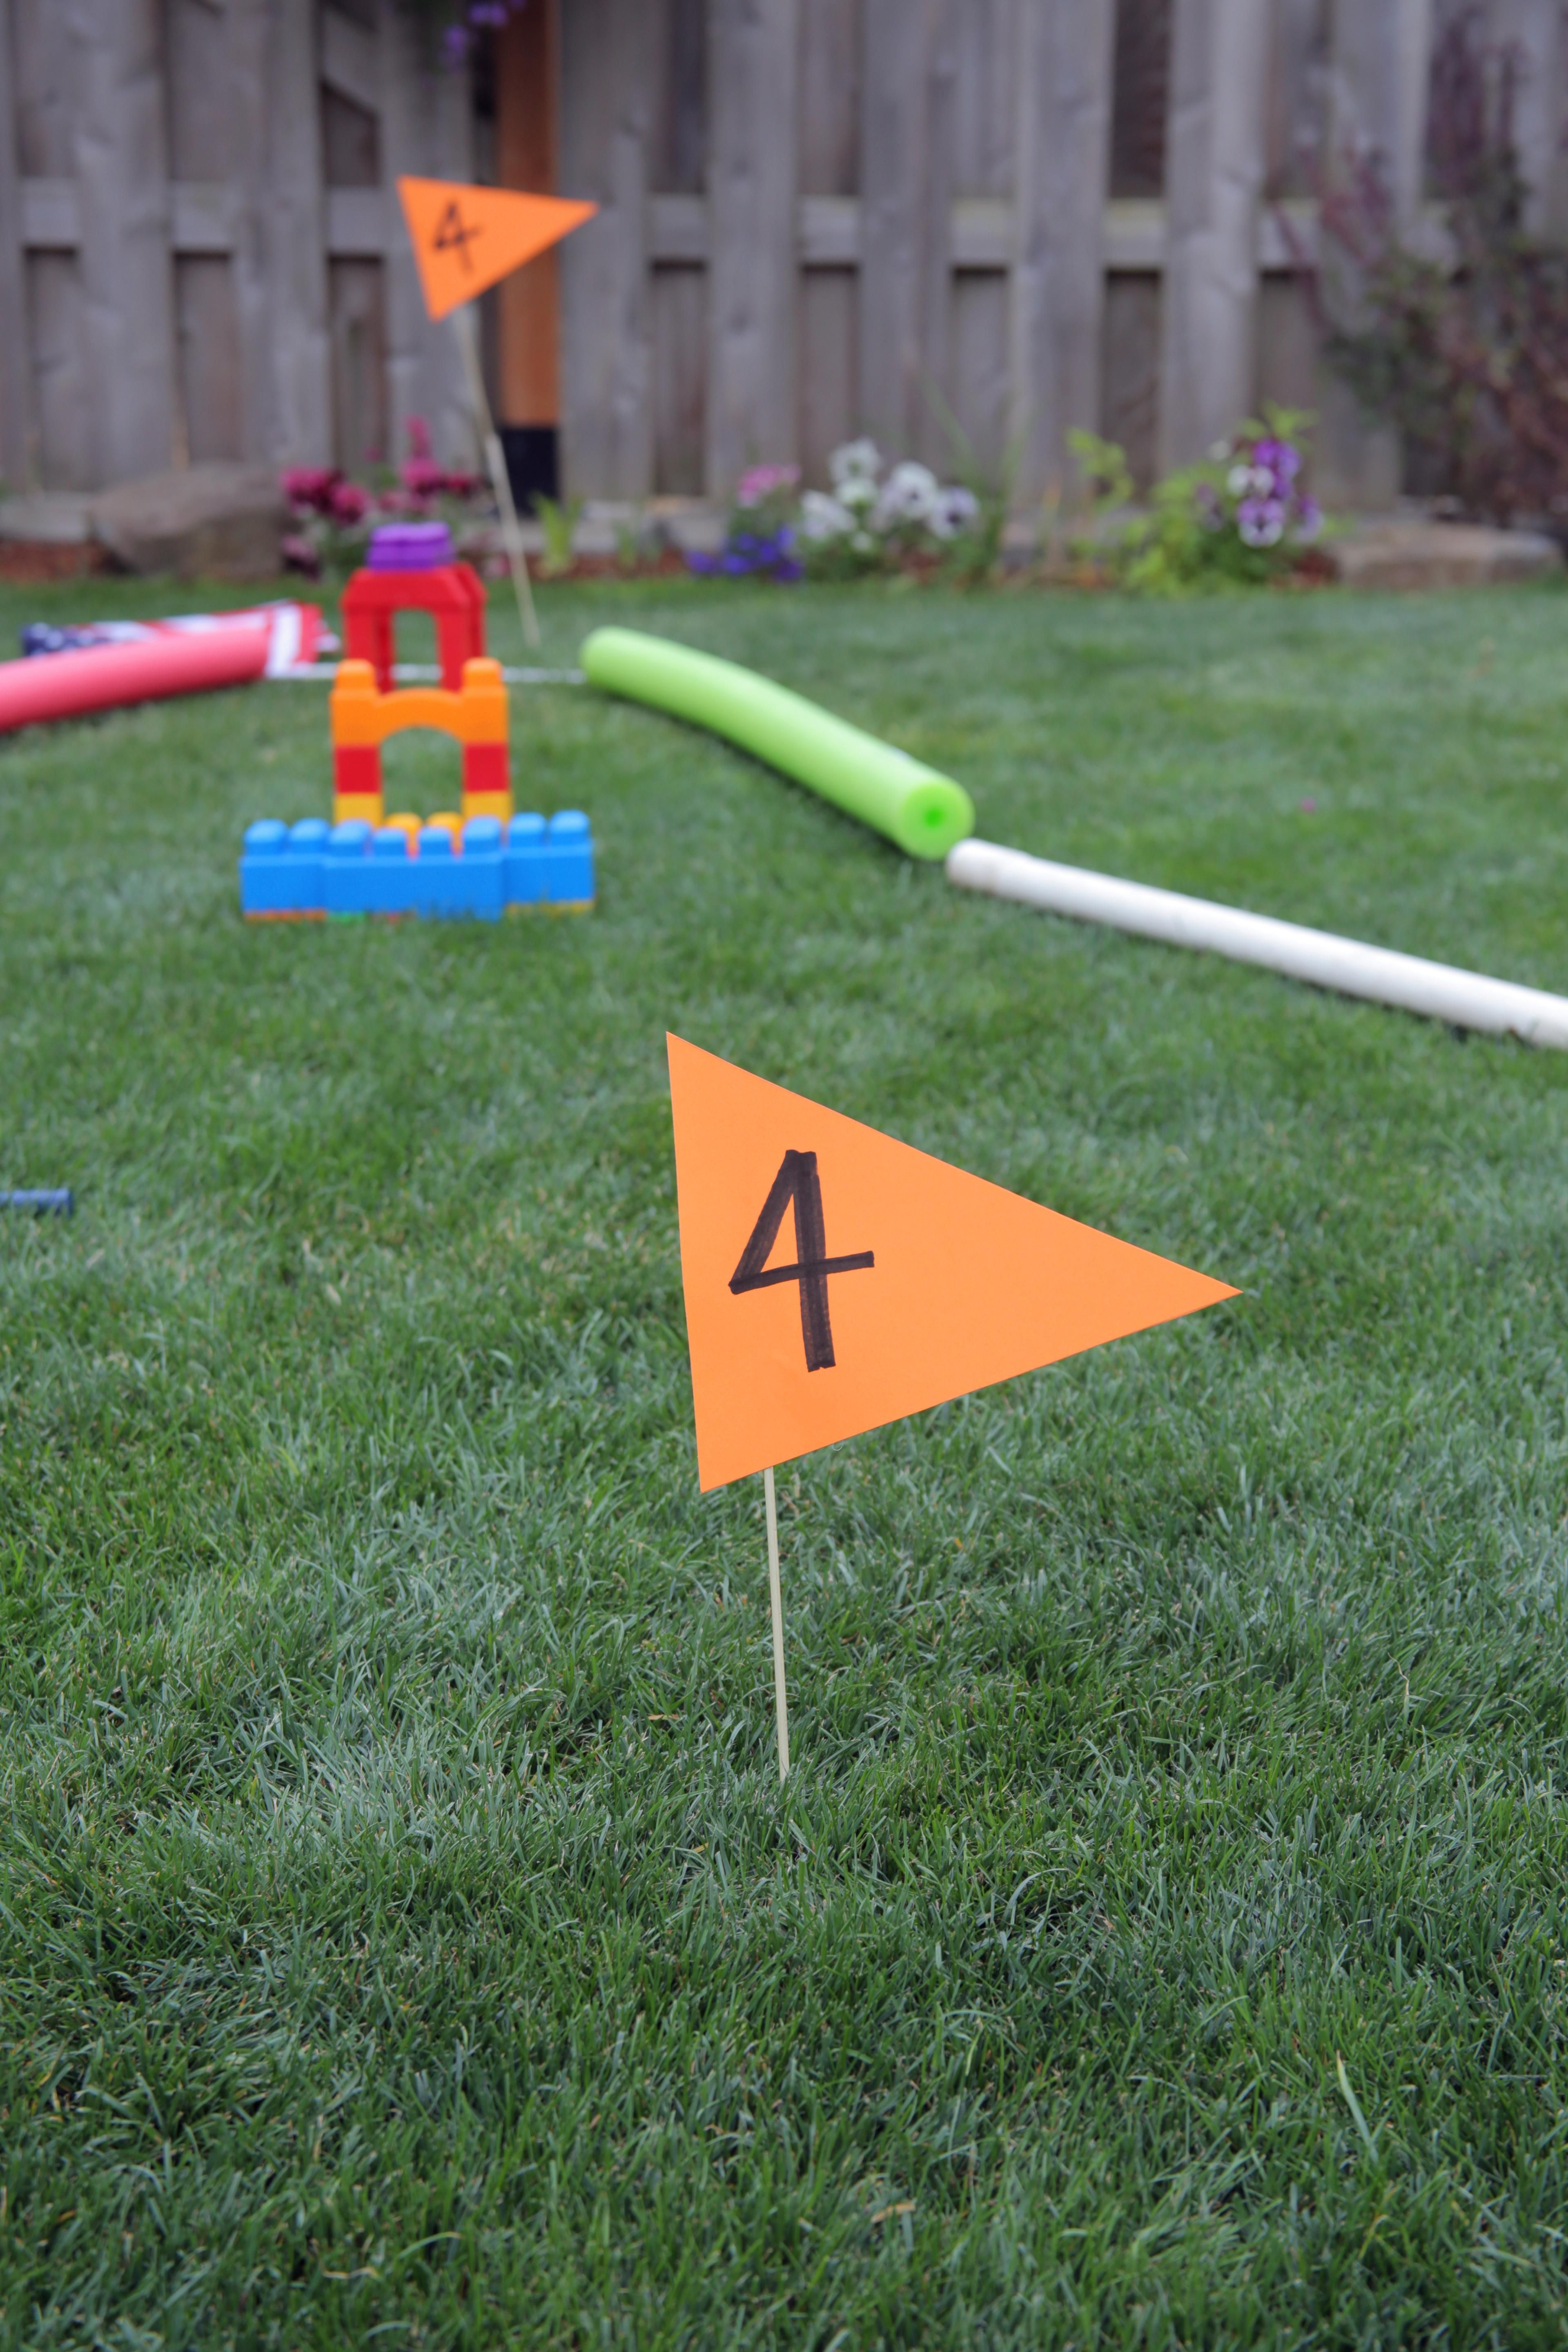 DIY Mini Golf course in the backyard